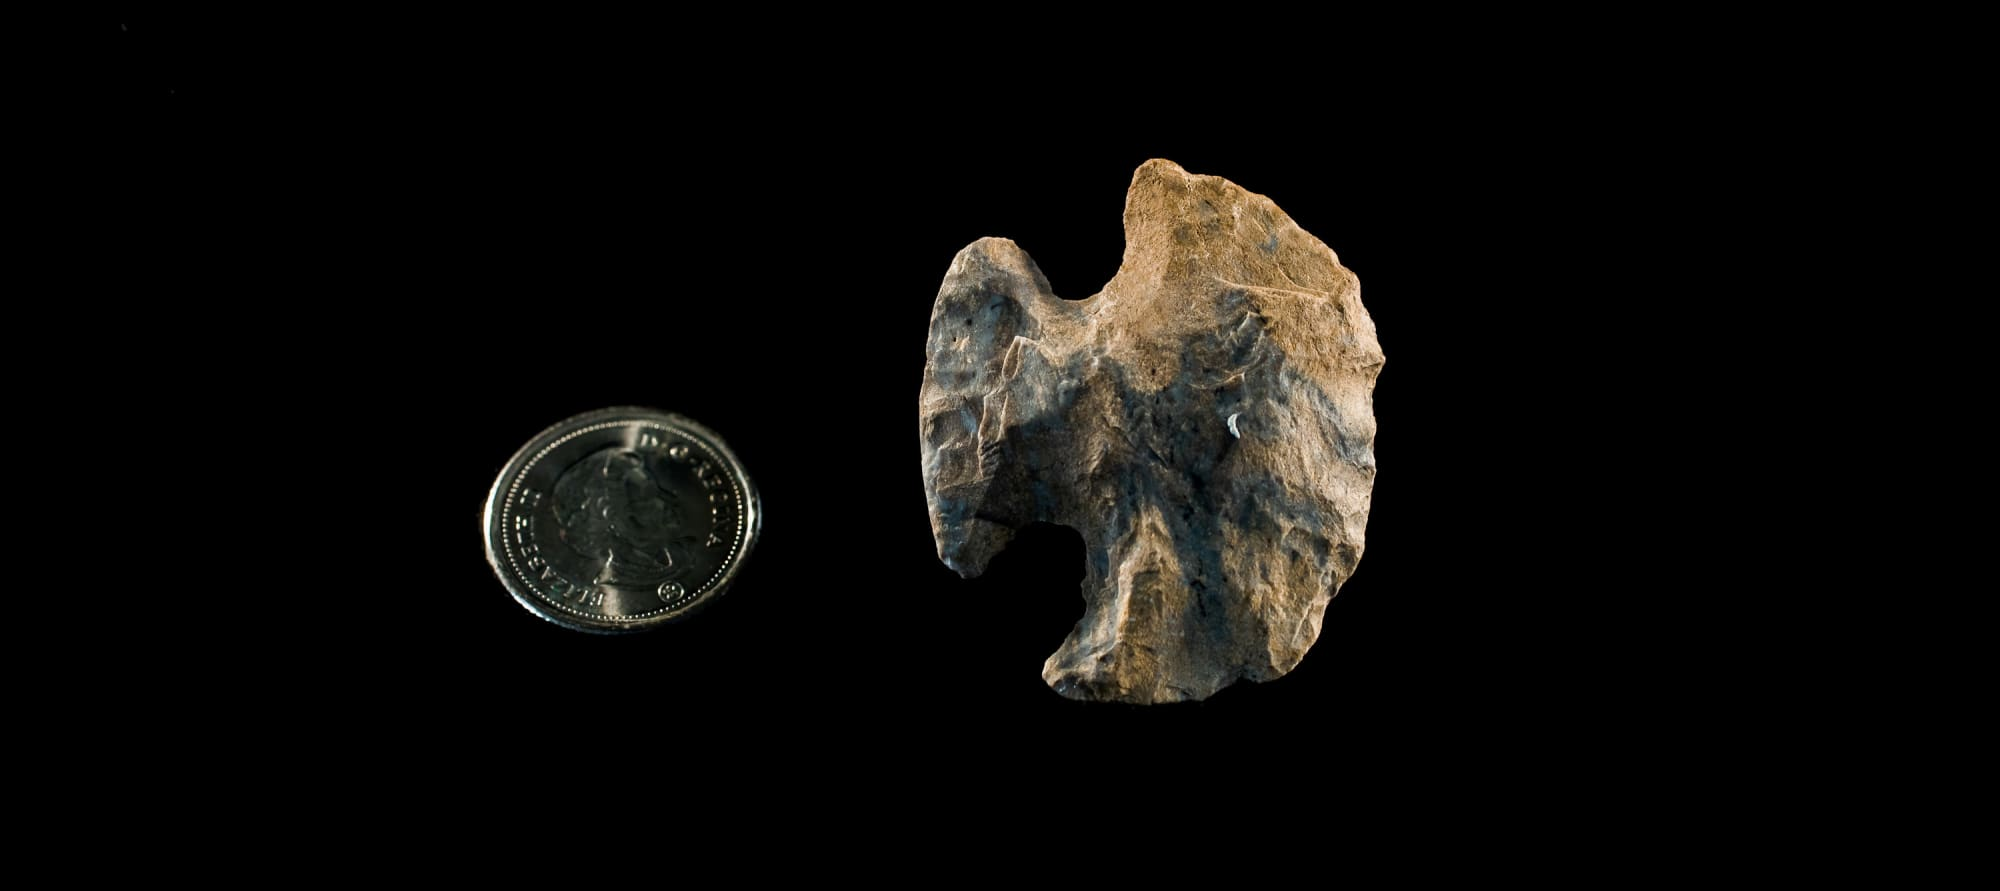 Re-worked stone tools